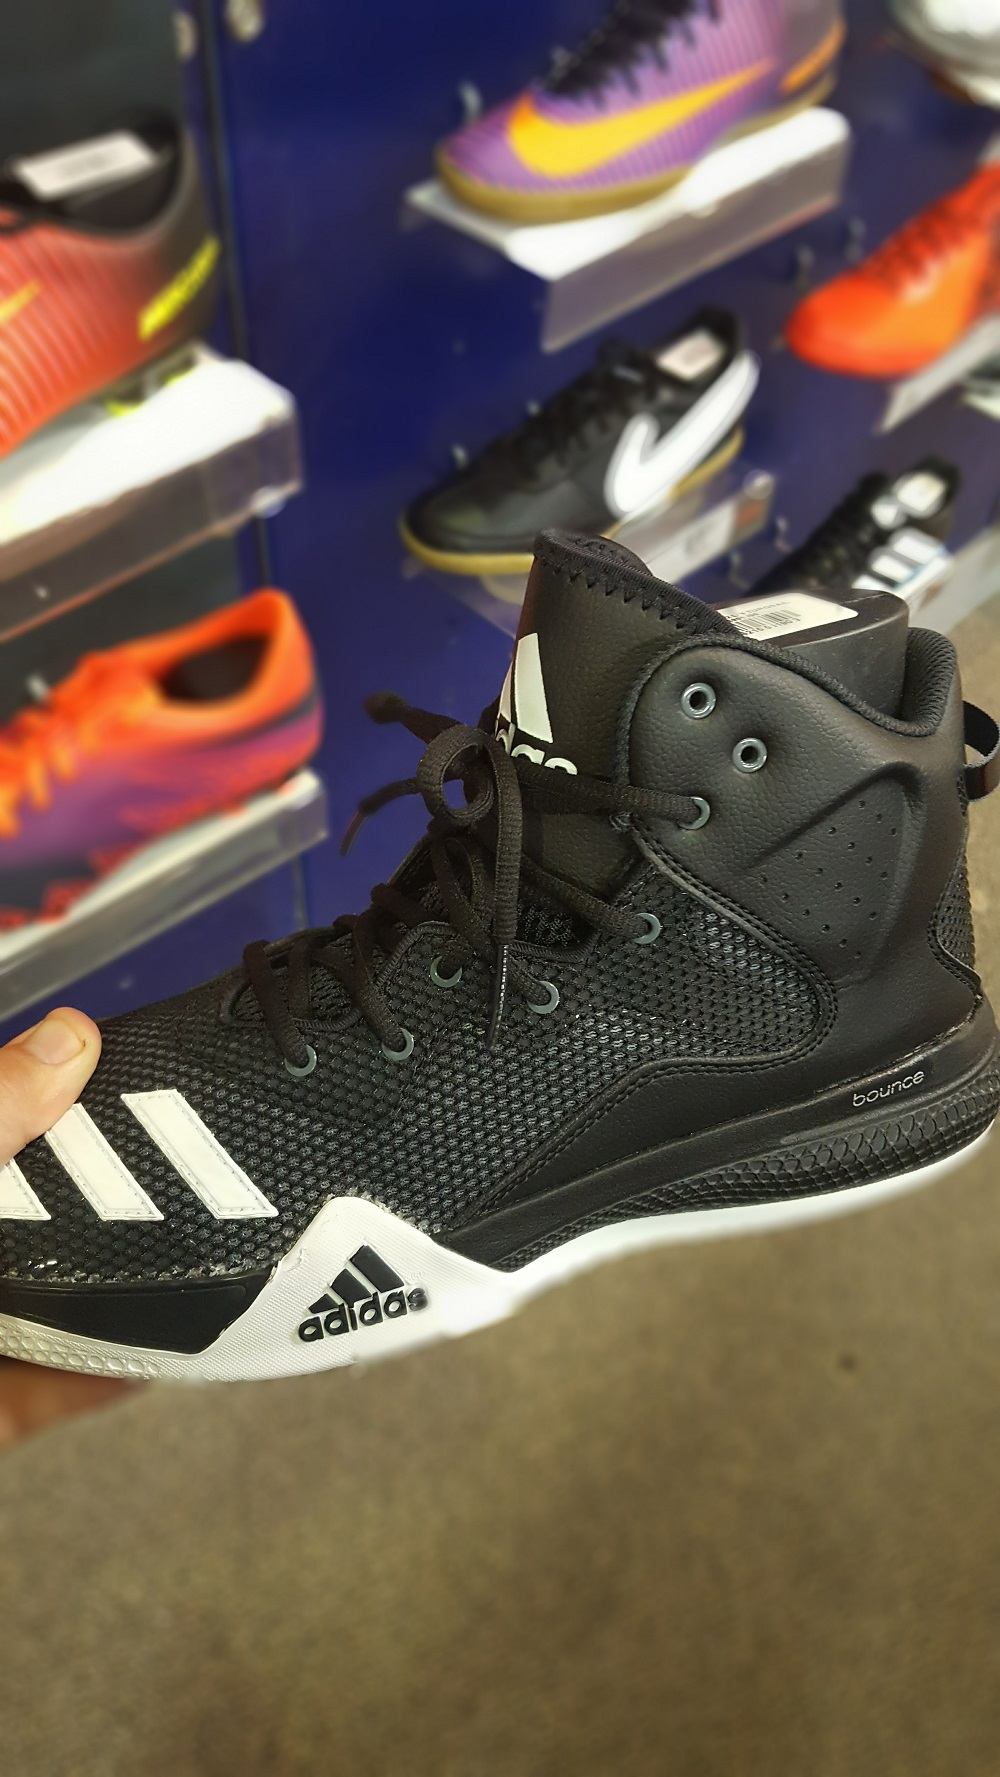 First Look at the adidas Dual Threat - WearTesters ee861c376